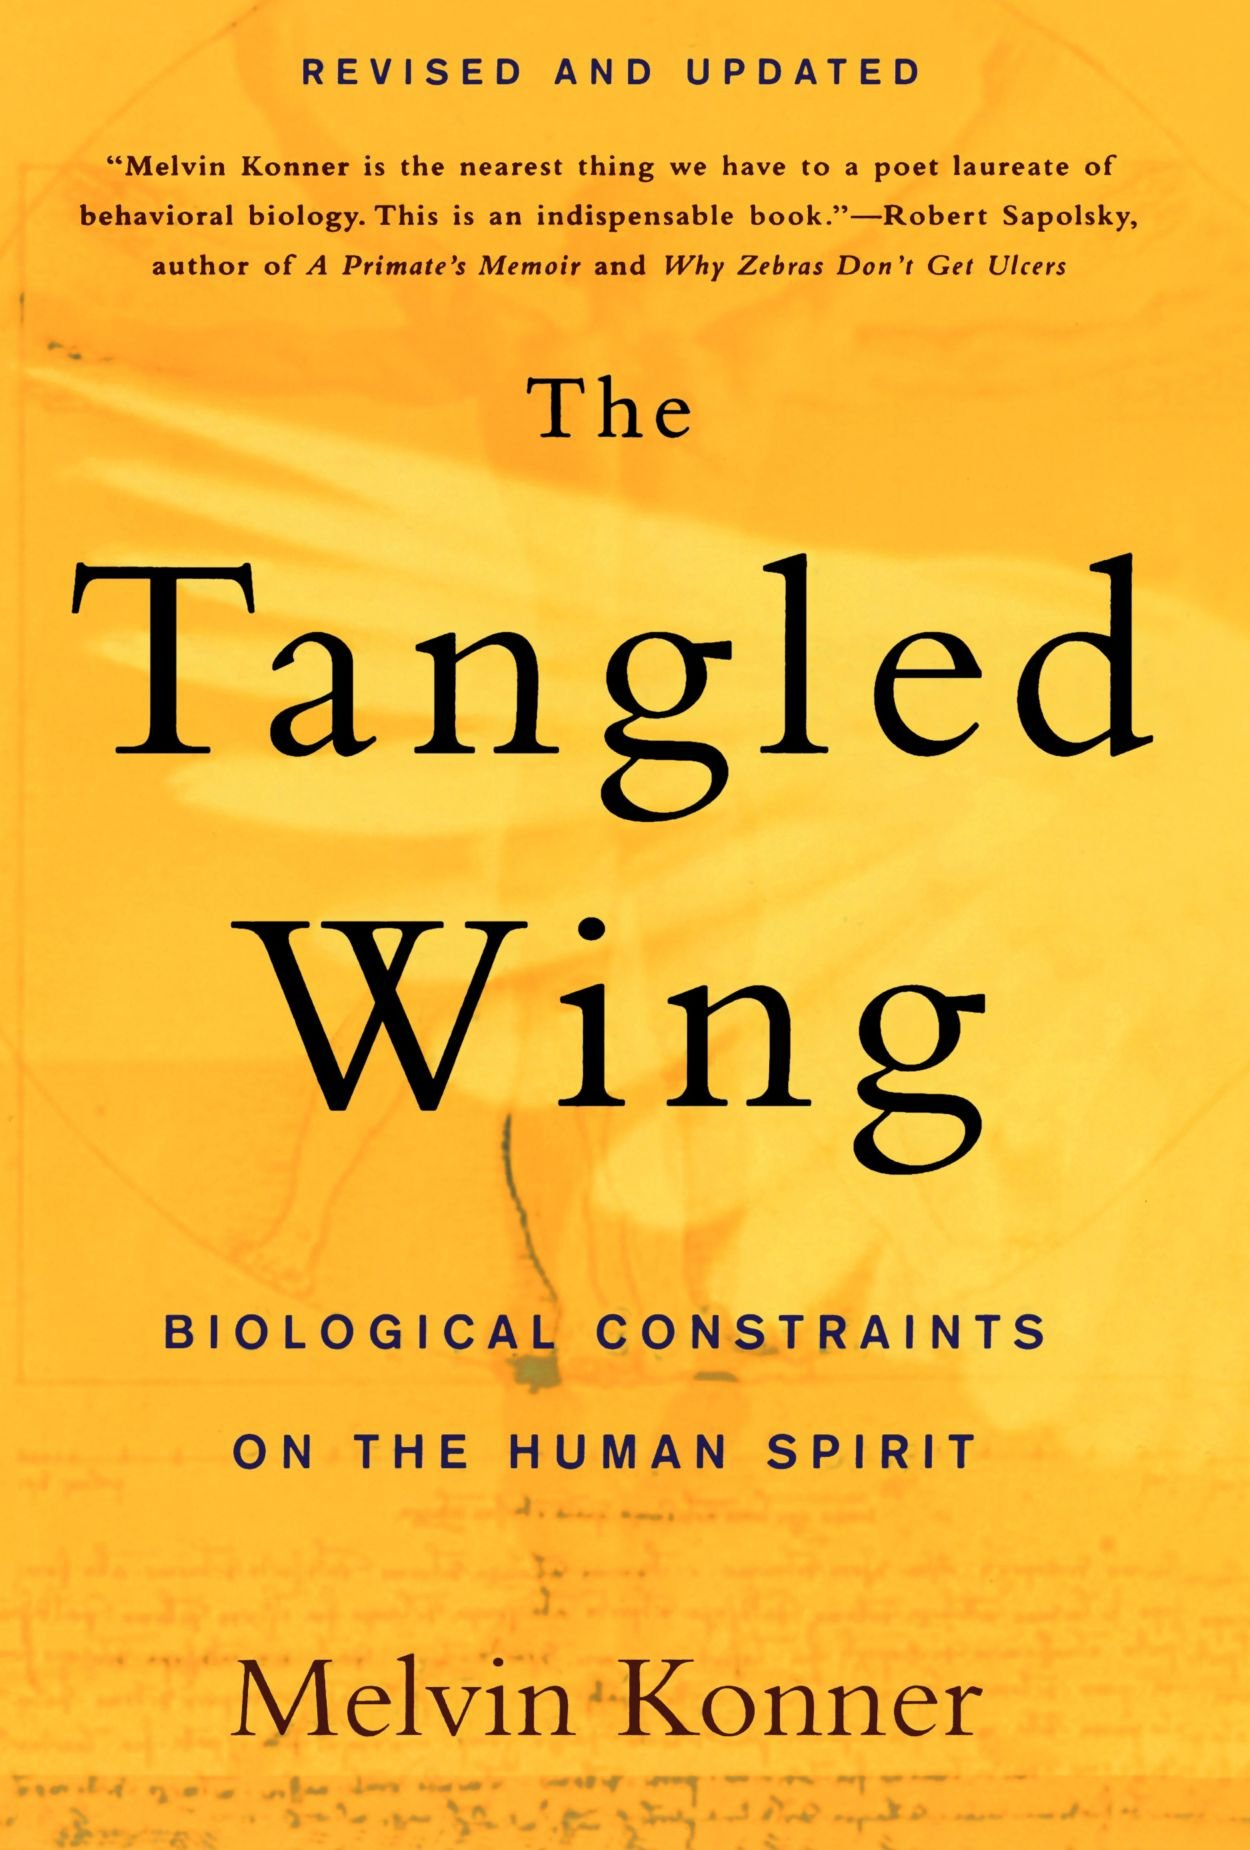 The Tangled Wing: Biological Constraints on the Human Spirit: Melvin  Konner: 9780805072792: Amazon.com: Books